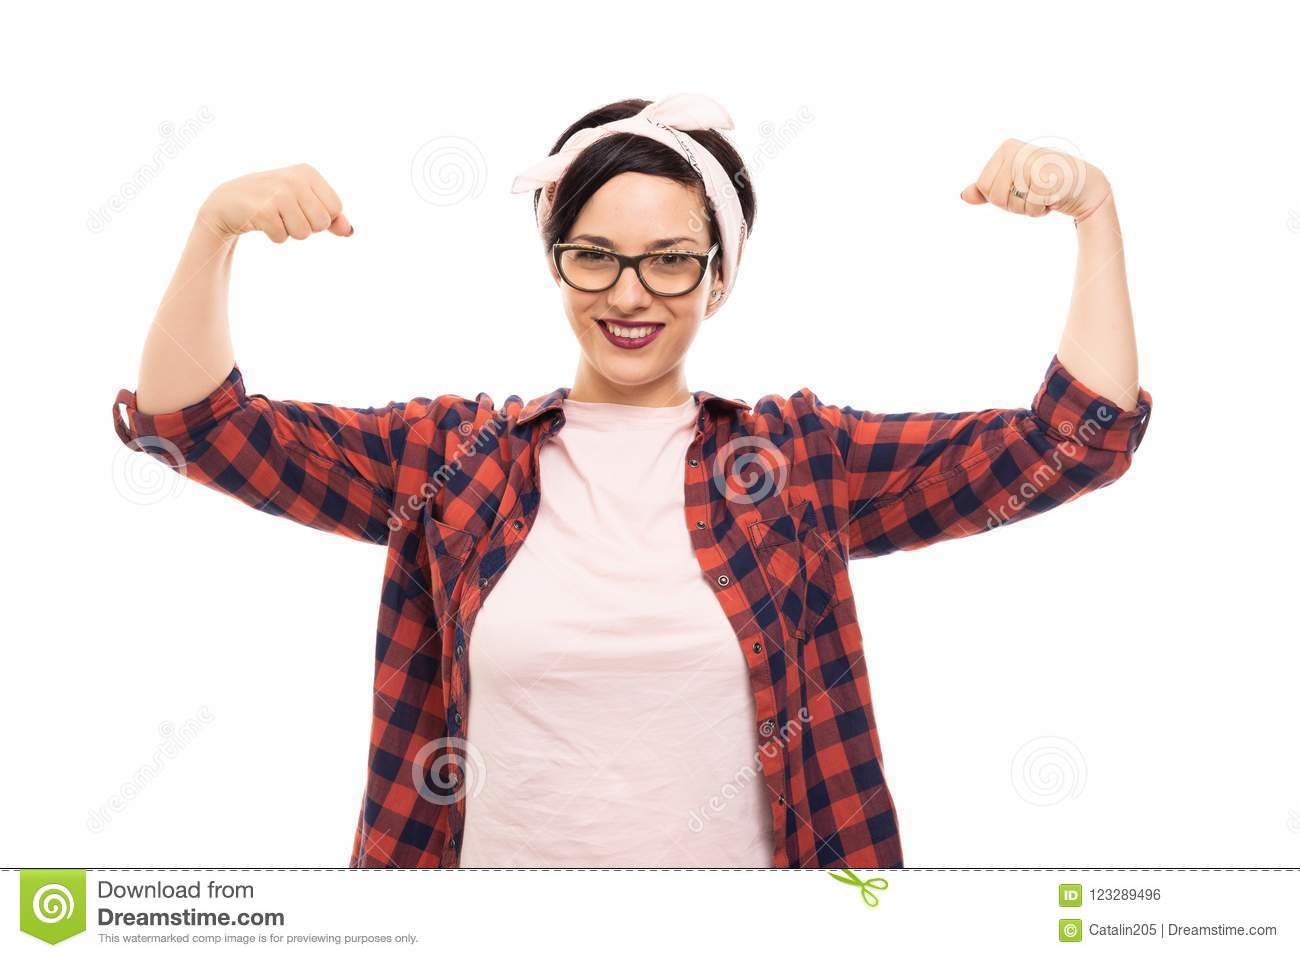 Pretty pin-up girl wearing glasses showing both her biceps